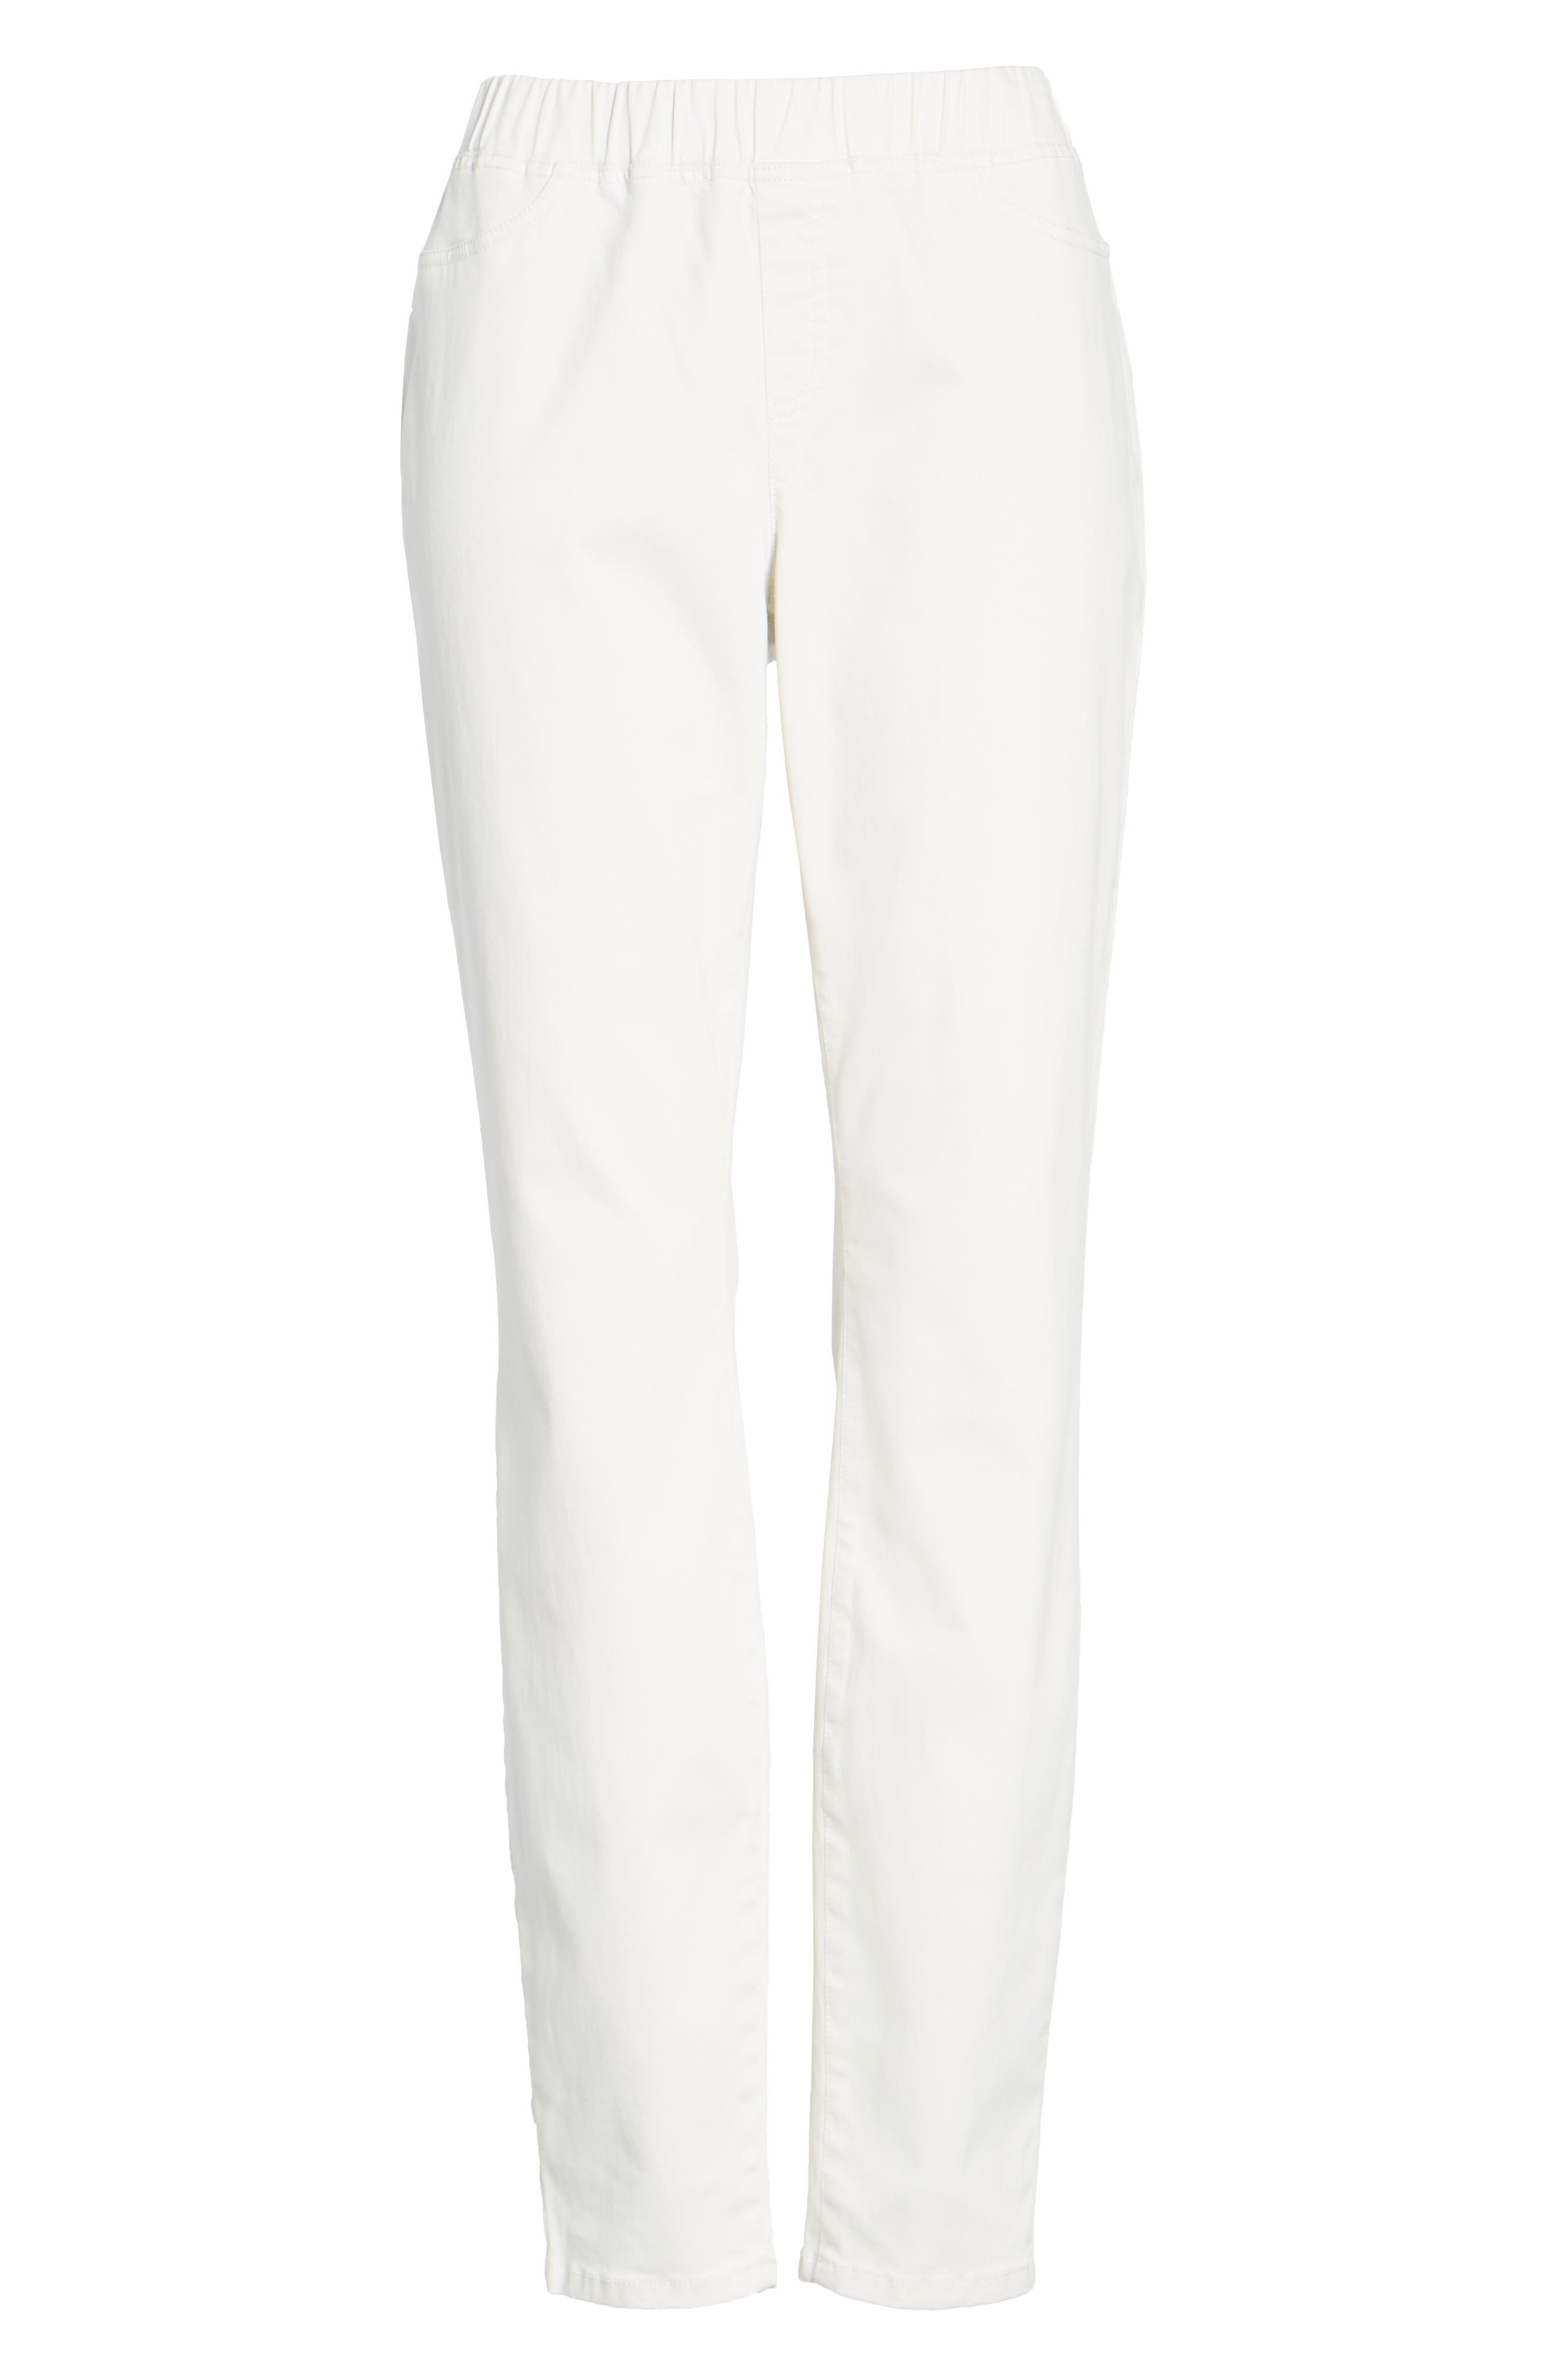 Stretch Organic Cotton Denim Skinny Pants,                             Alternate thumbnail 6, color,